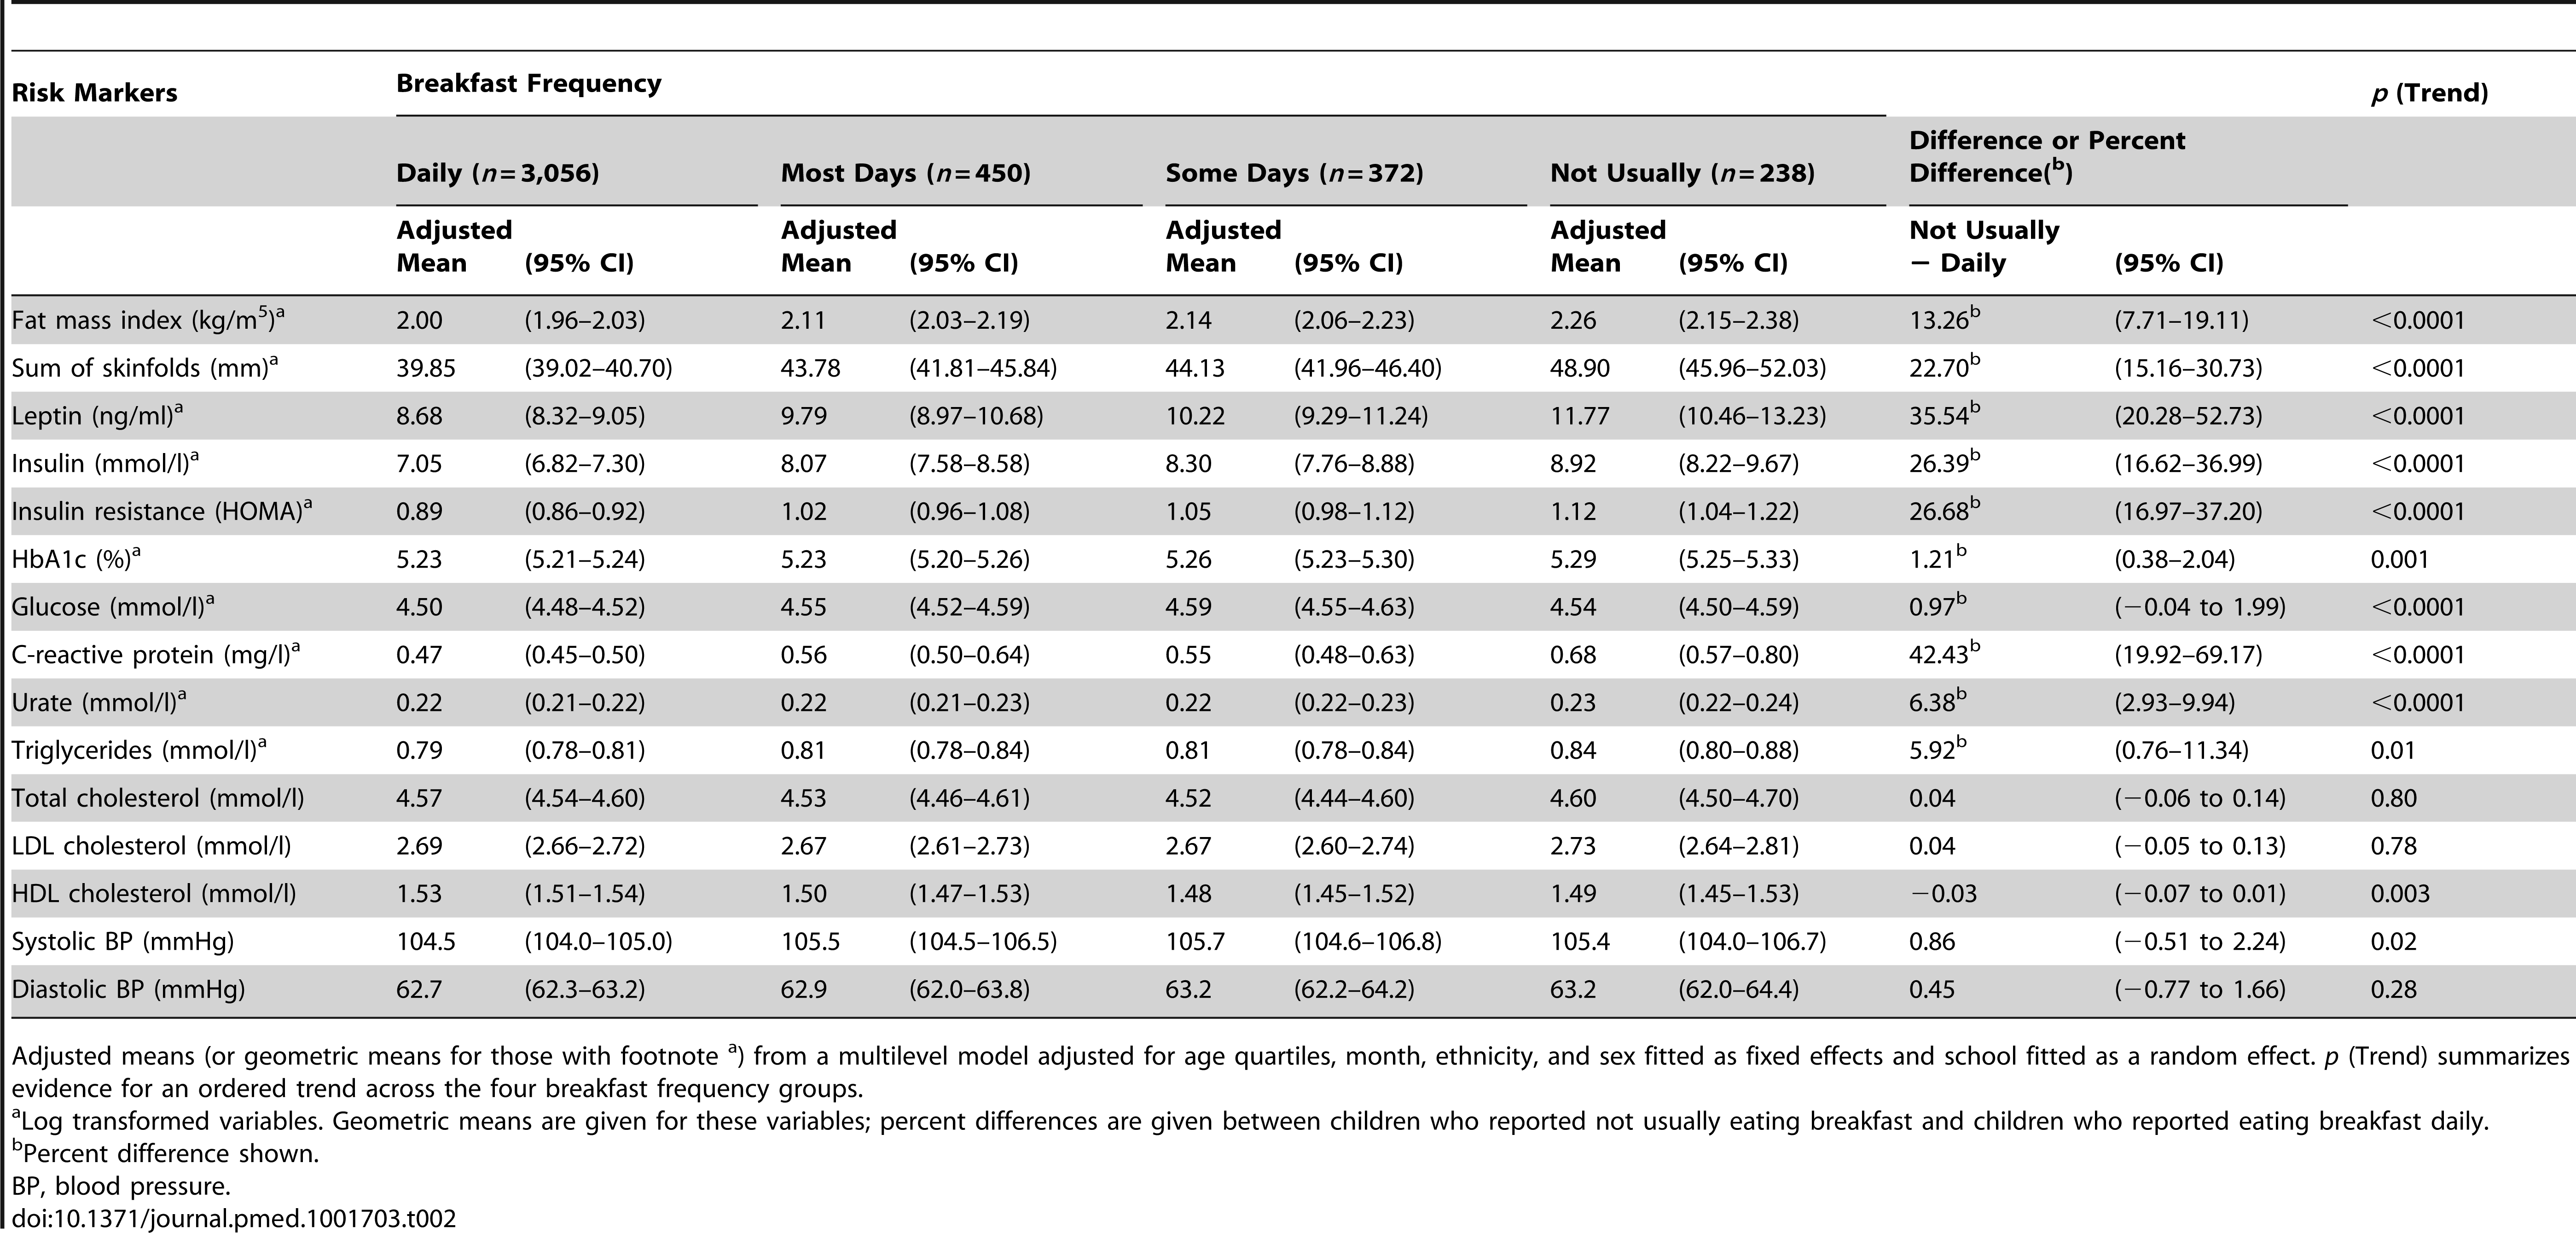 Means (geometric means) and differences (percent differences) in type 2 diabetes and cardiovascular risk markers by breakfast frequency in 4,116 study participants.